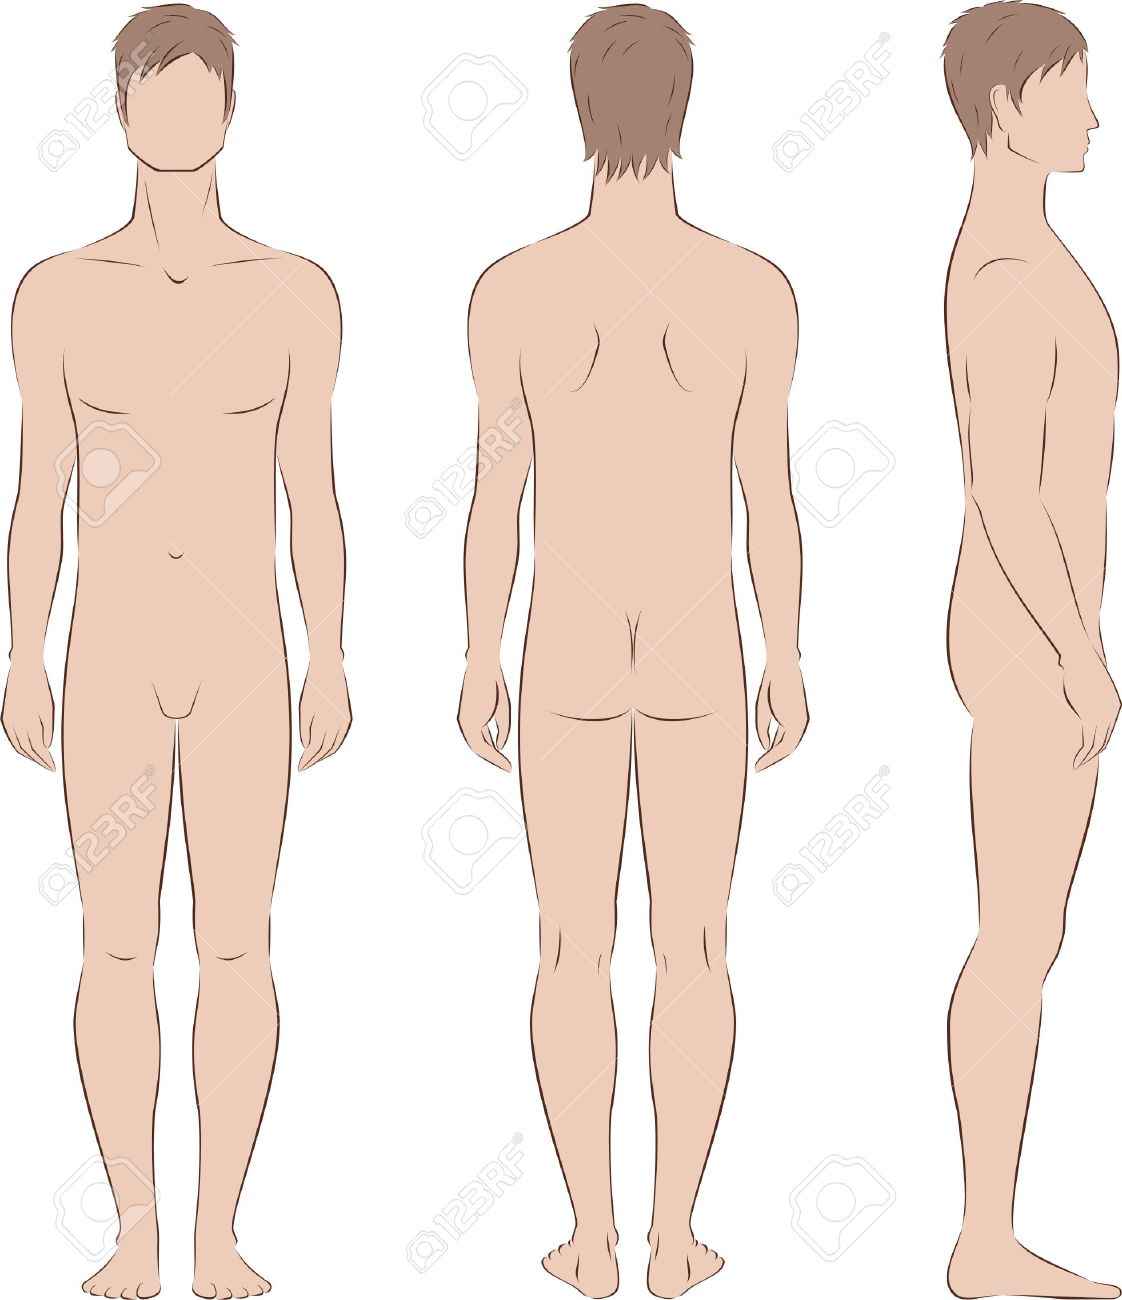 Human Body Outline Vector Human Body Outline